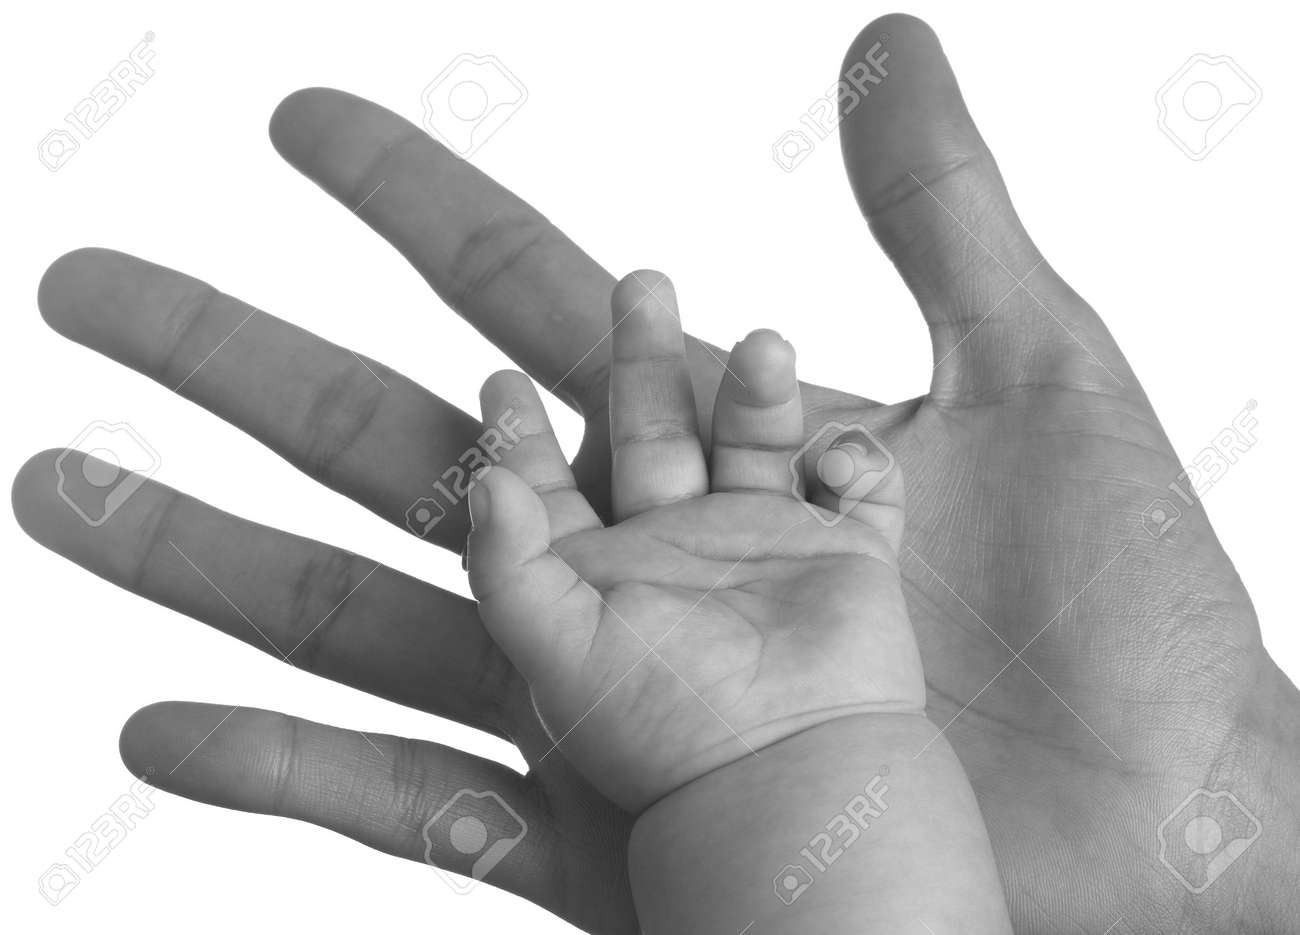 adult hand holding a baby hand closeup, black and white Stock Photo - 8413056